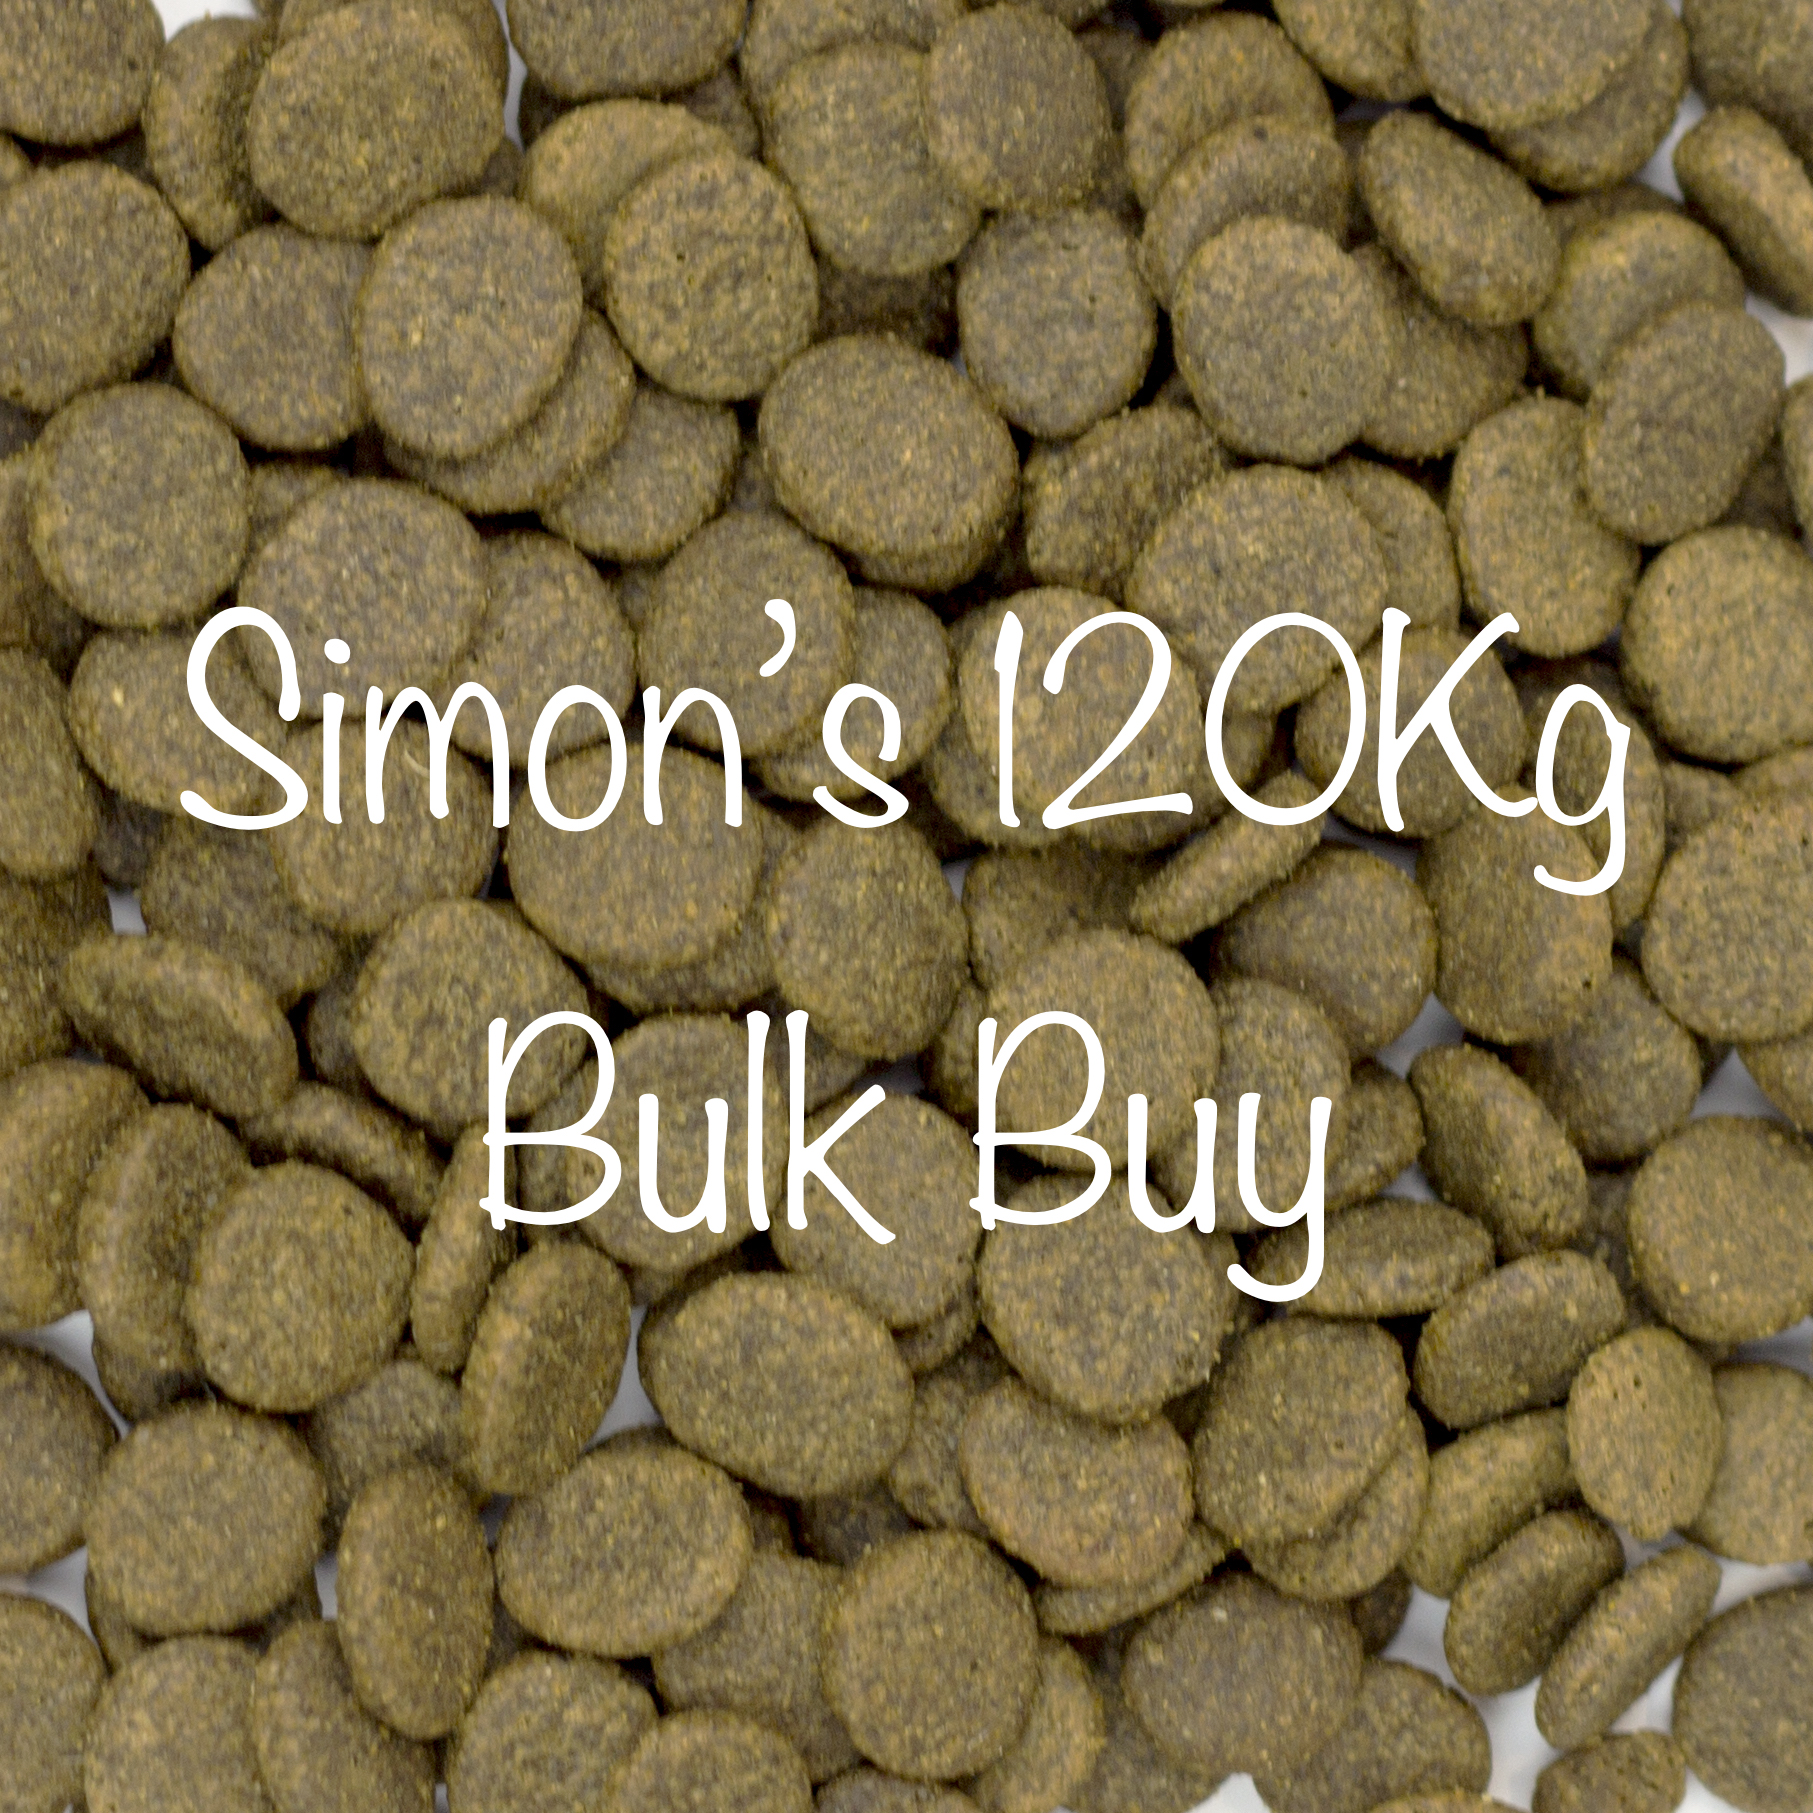 6 x 15Kg Bags of Simon's Dinner